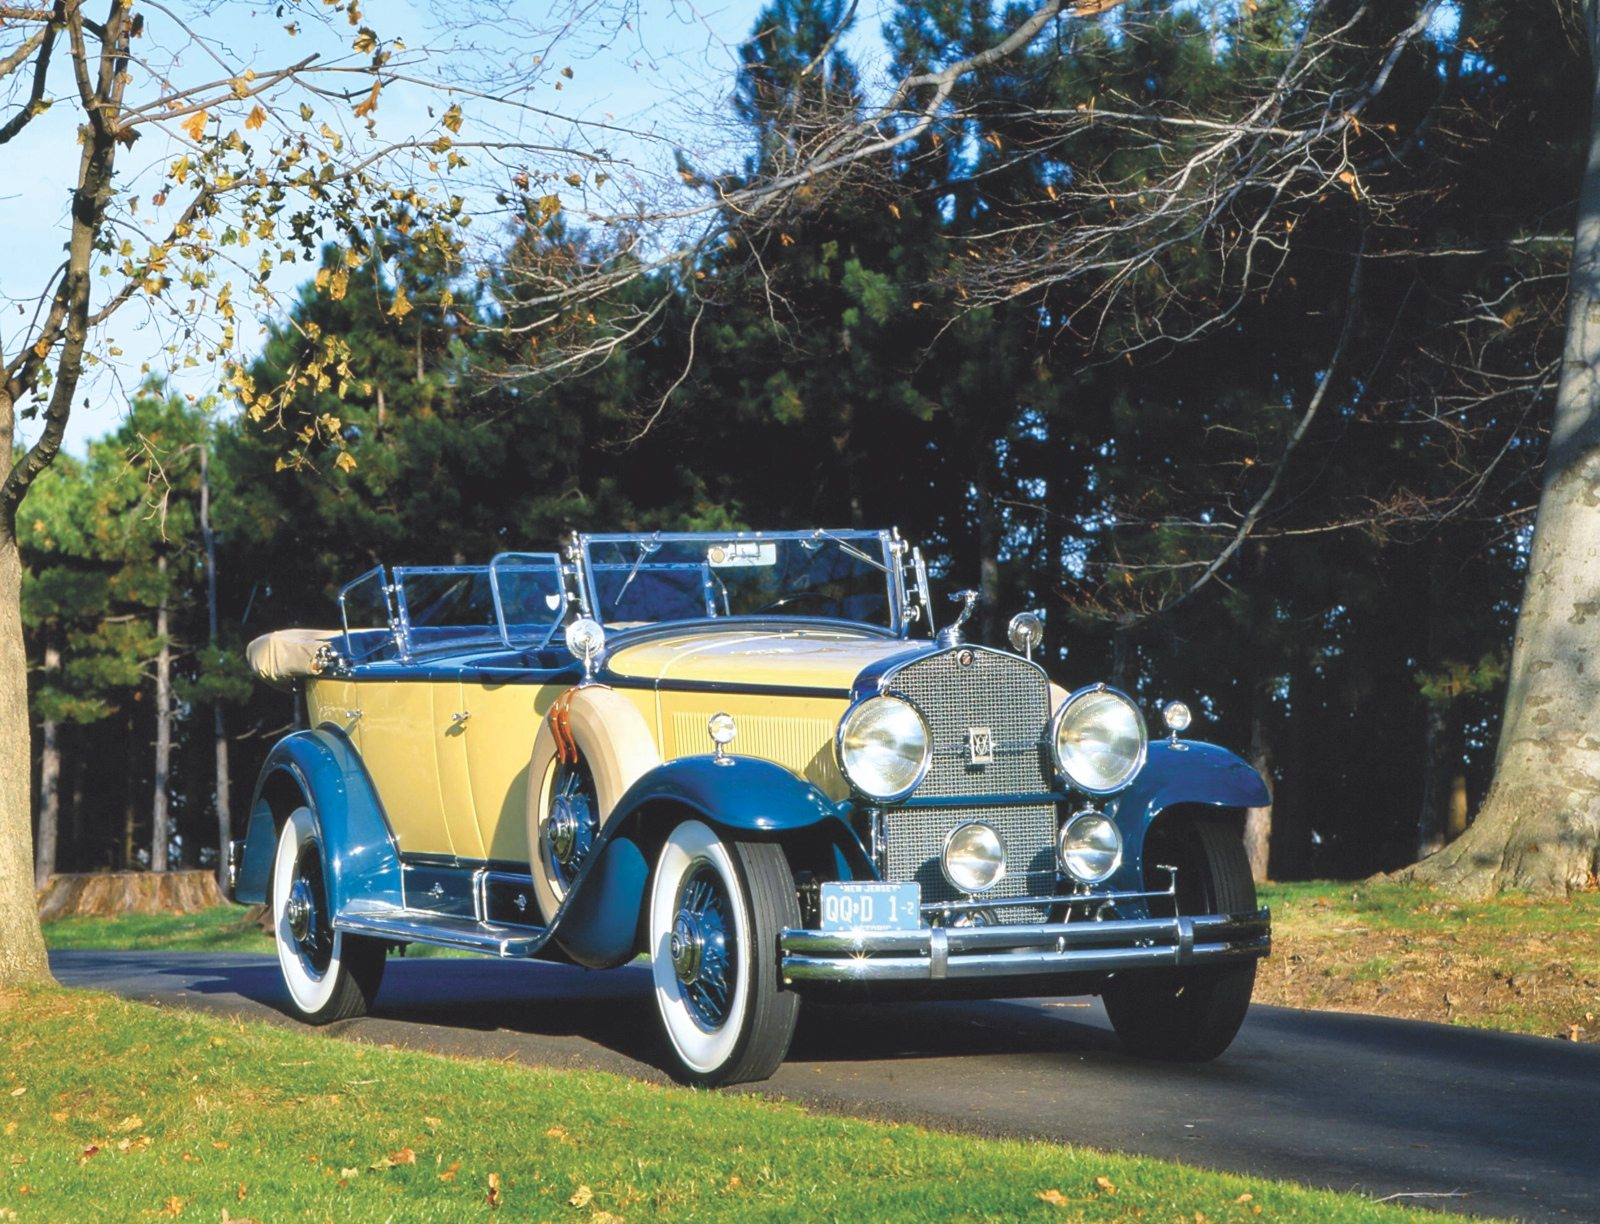 hight resolution of in 1927 harley earl brought style to gm with the la salle the influence of the la salle its sweeping fender lines and side mount spares spread to the